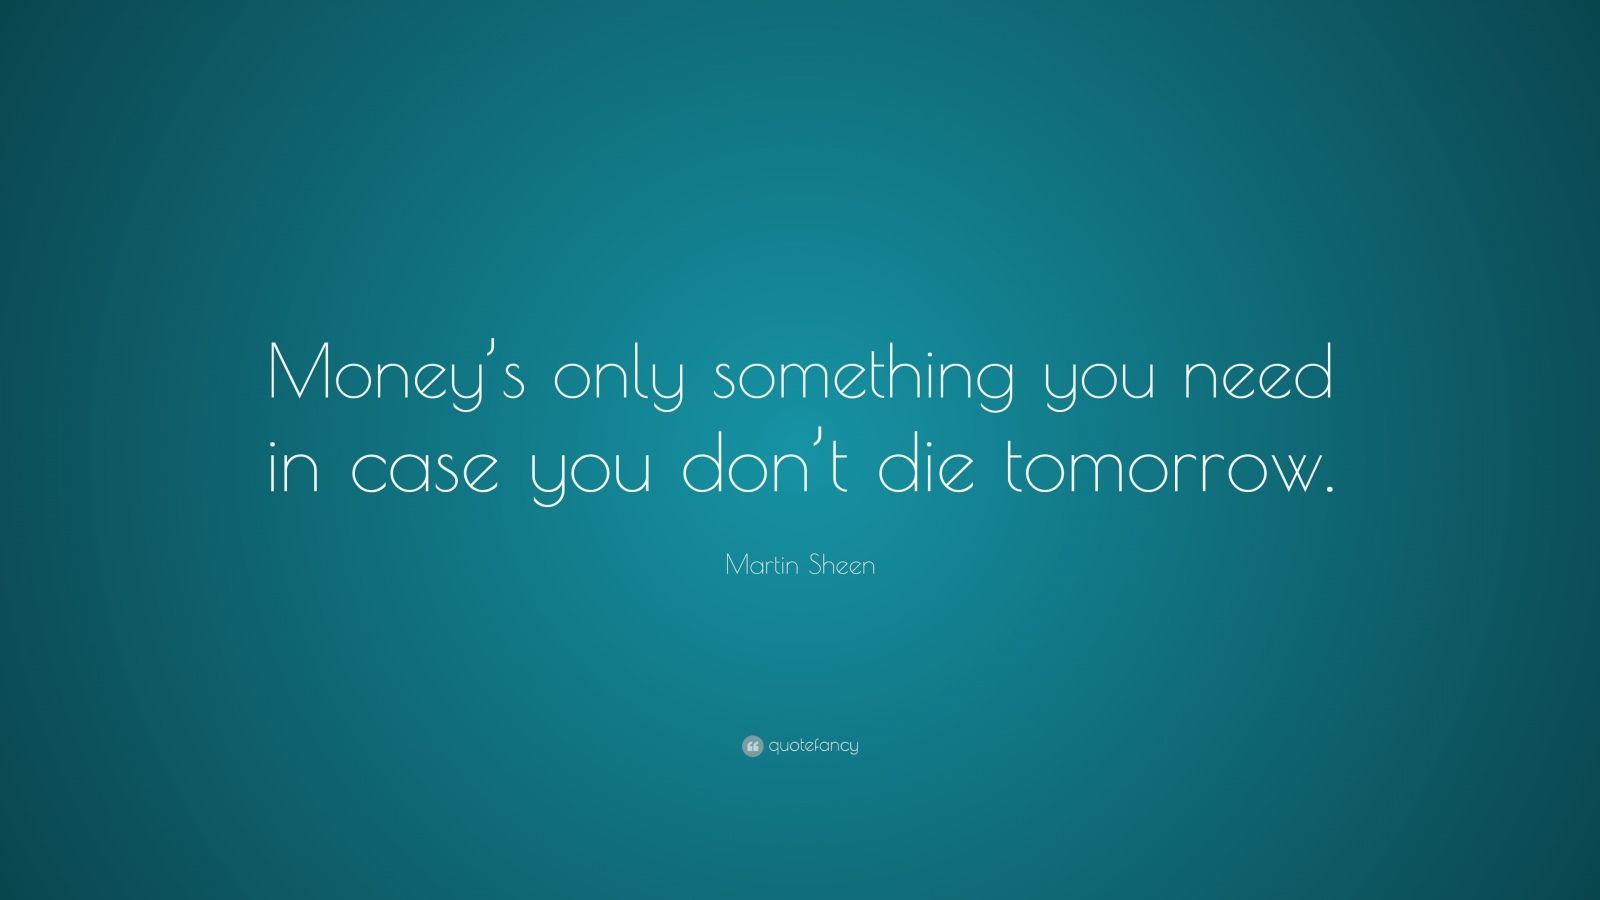 """Martin Sheen Quote: """"Money's only something you need in case you don't die tomorrow."""""""